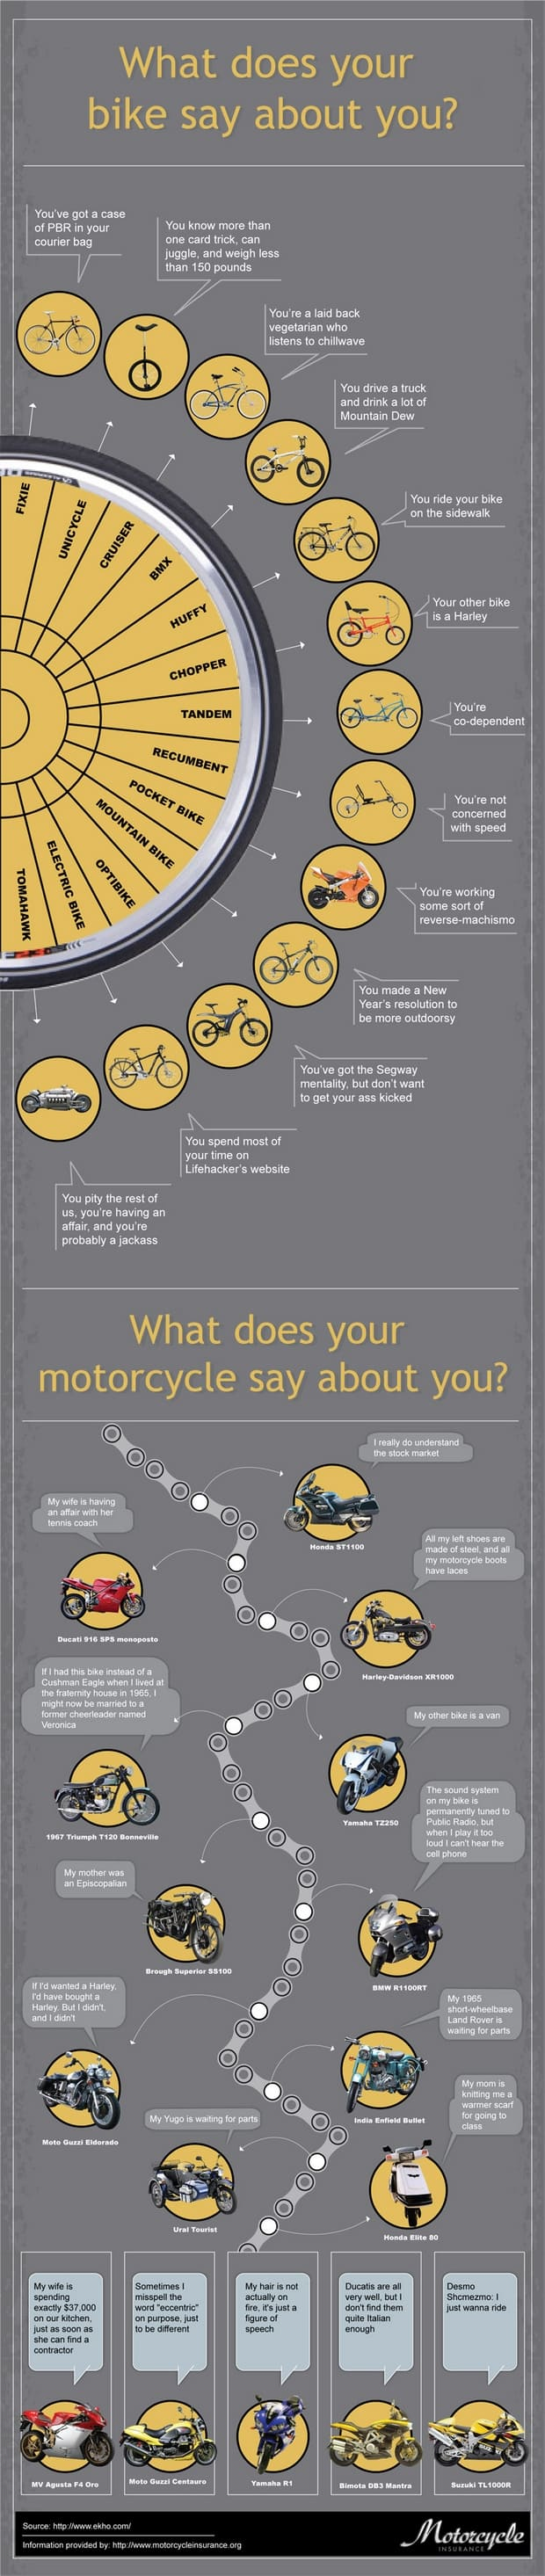 BikeMotorcycleSays infographic